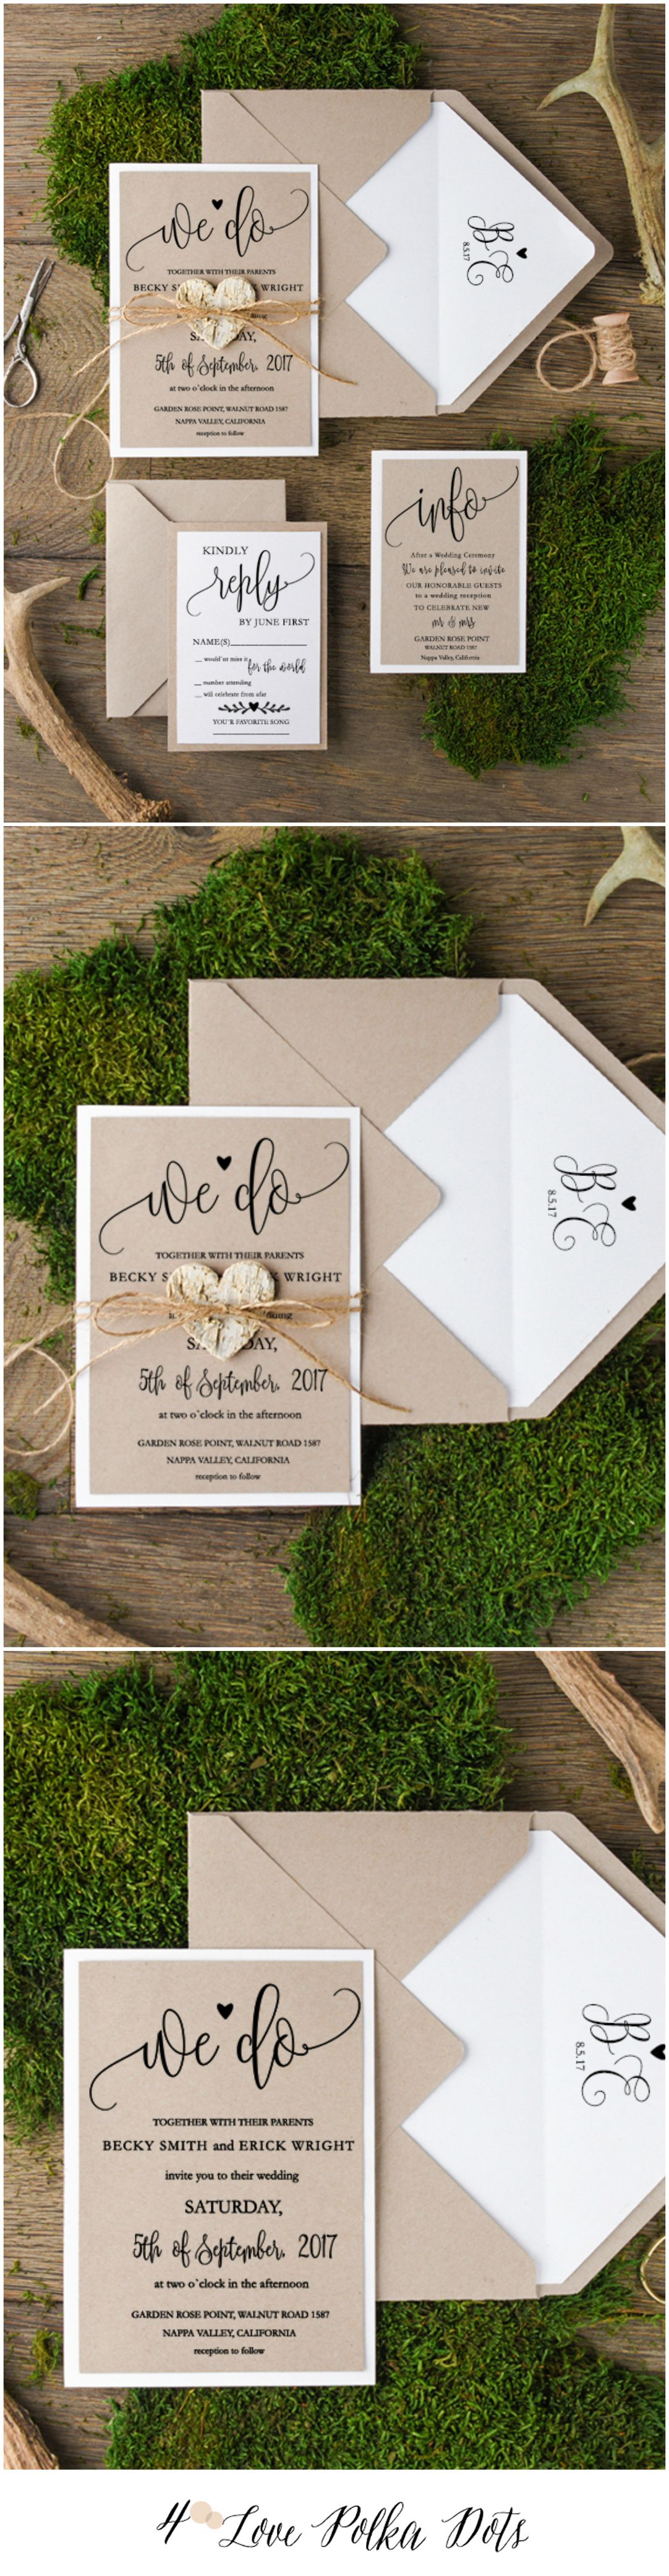 how to put guest names on wedding invitations%0A Eco Rustic Wedding Invitations  rusticwedding  countrywedding  dpf